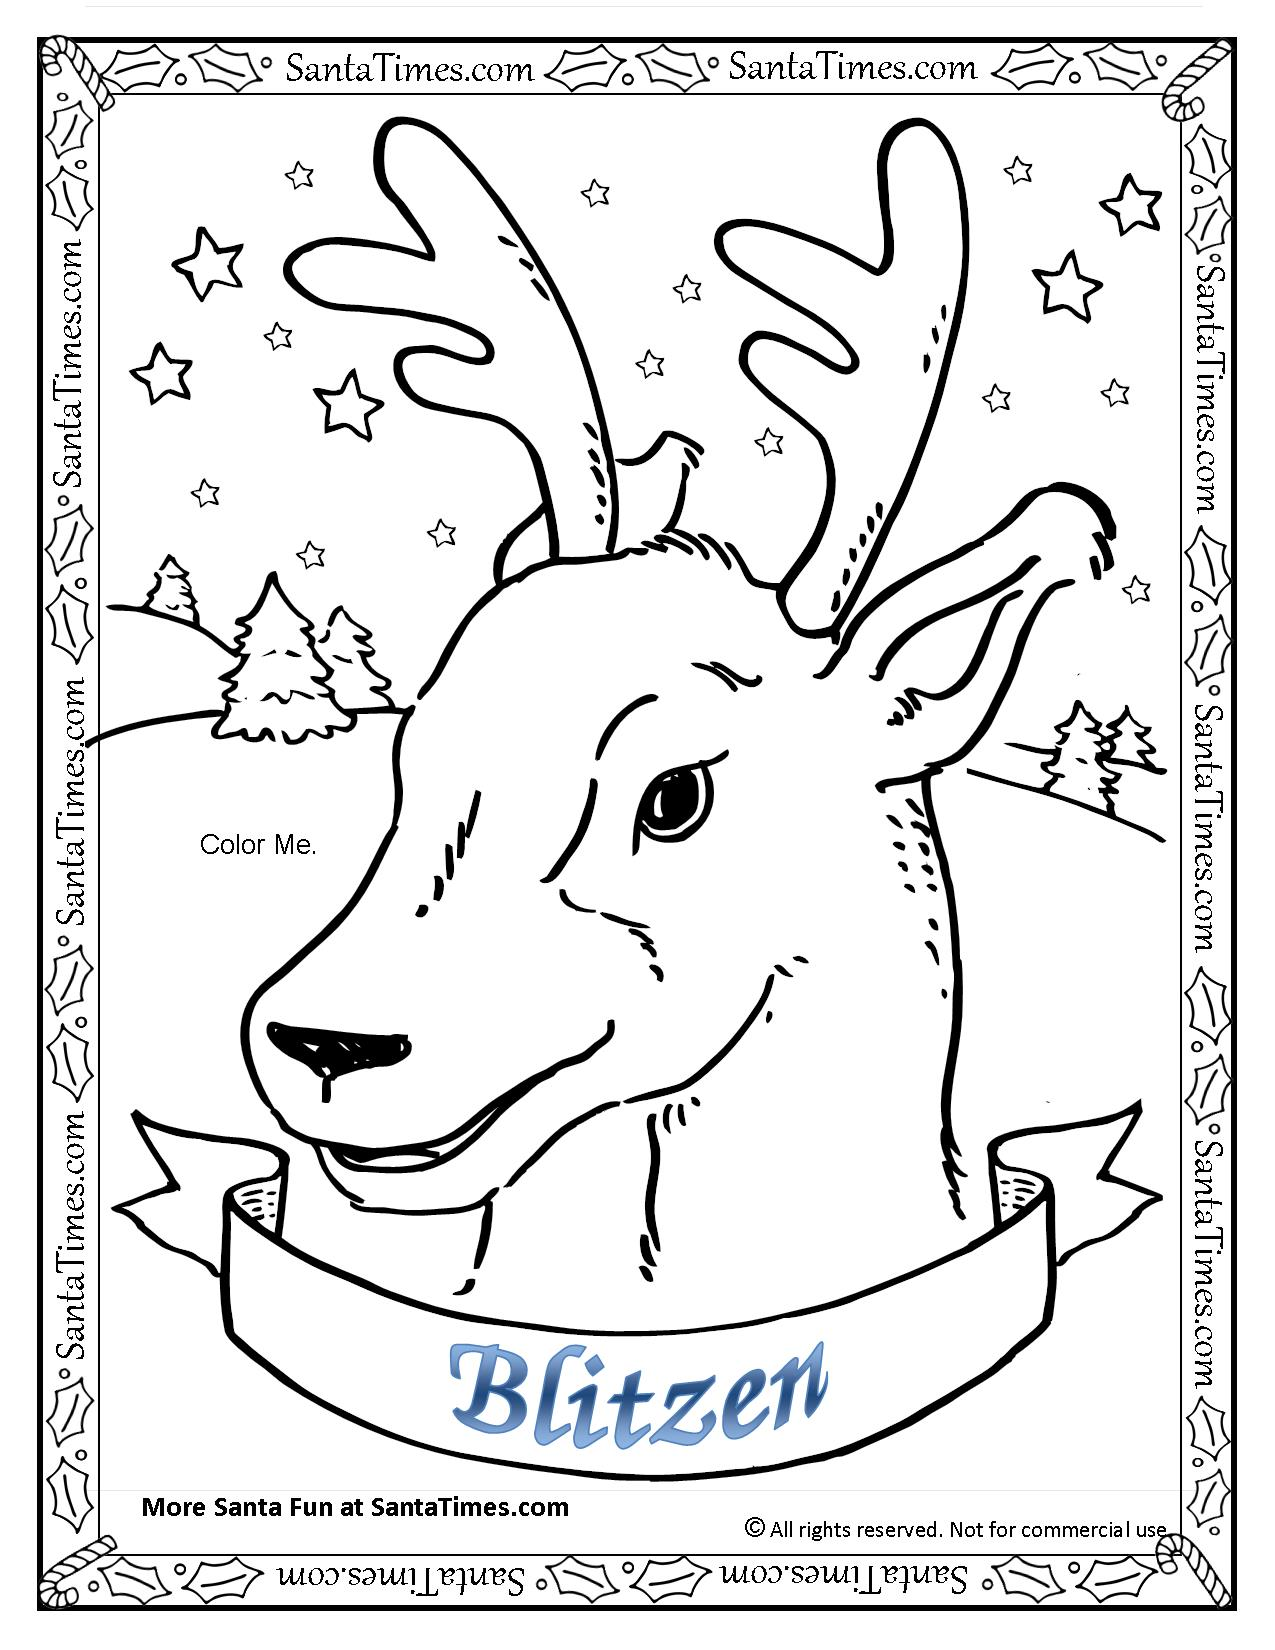 blitzen the reindeer printable coloring page